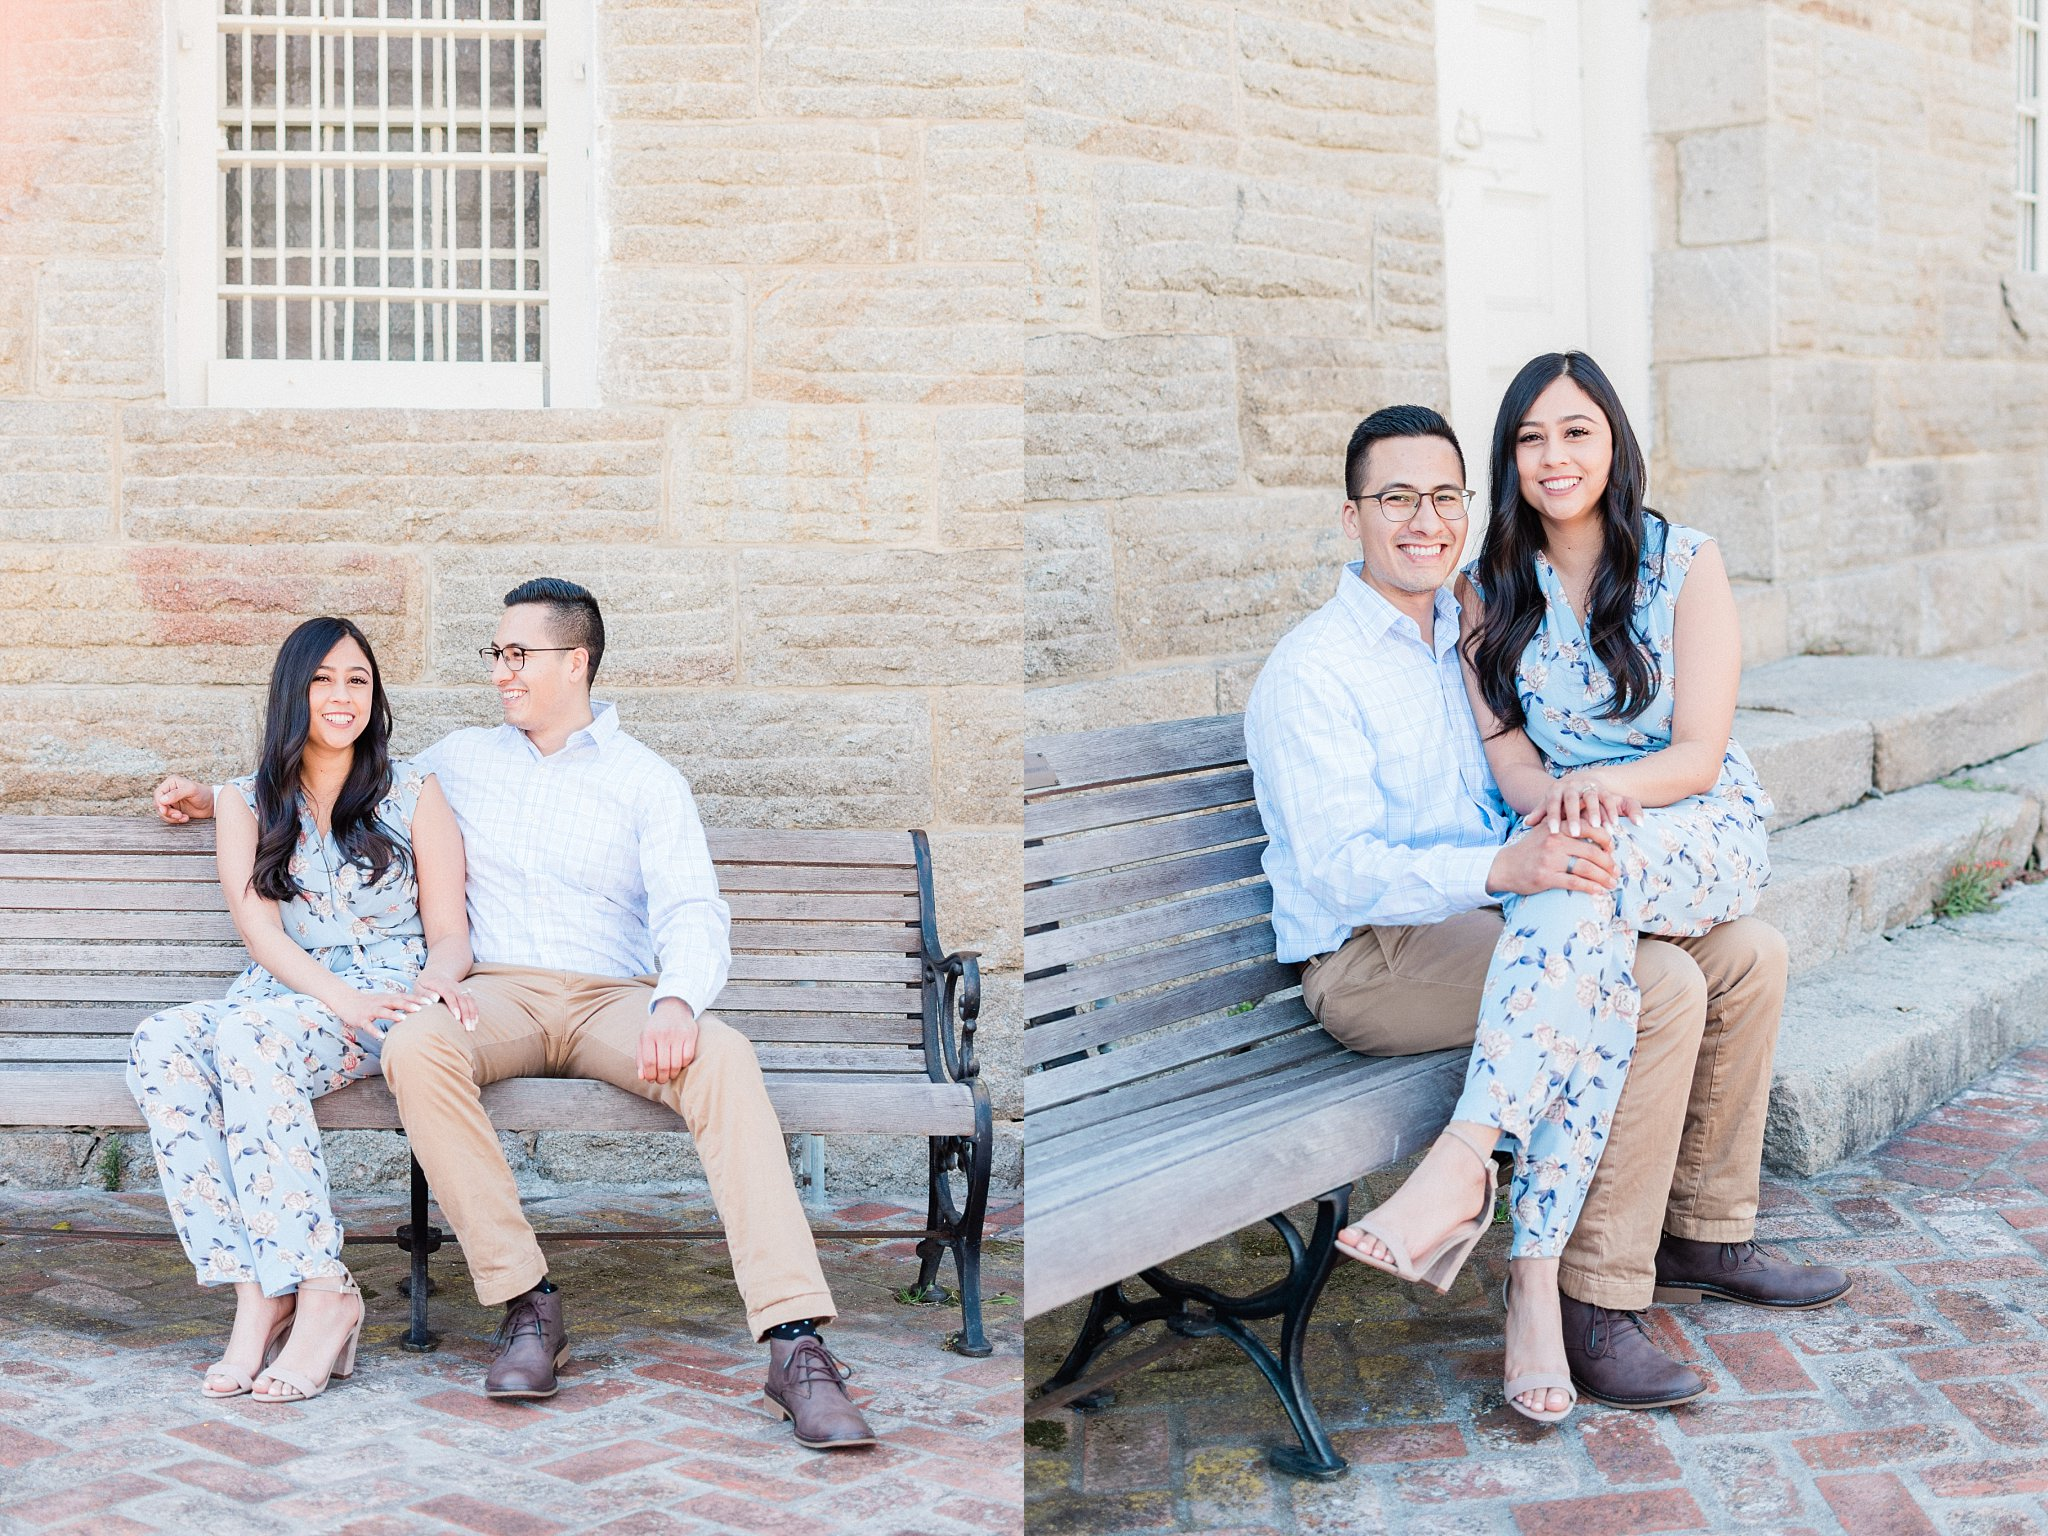 monterey-engagement-photographer-city-hall-drew-zavala-khrystal-chris_0052.jpg